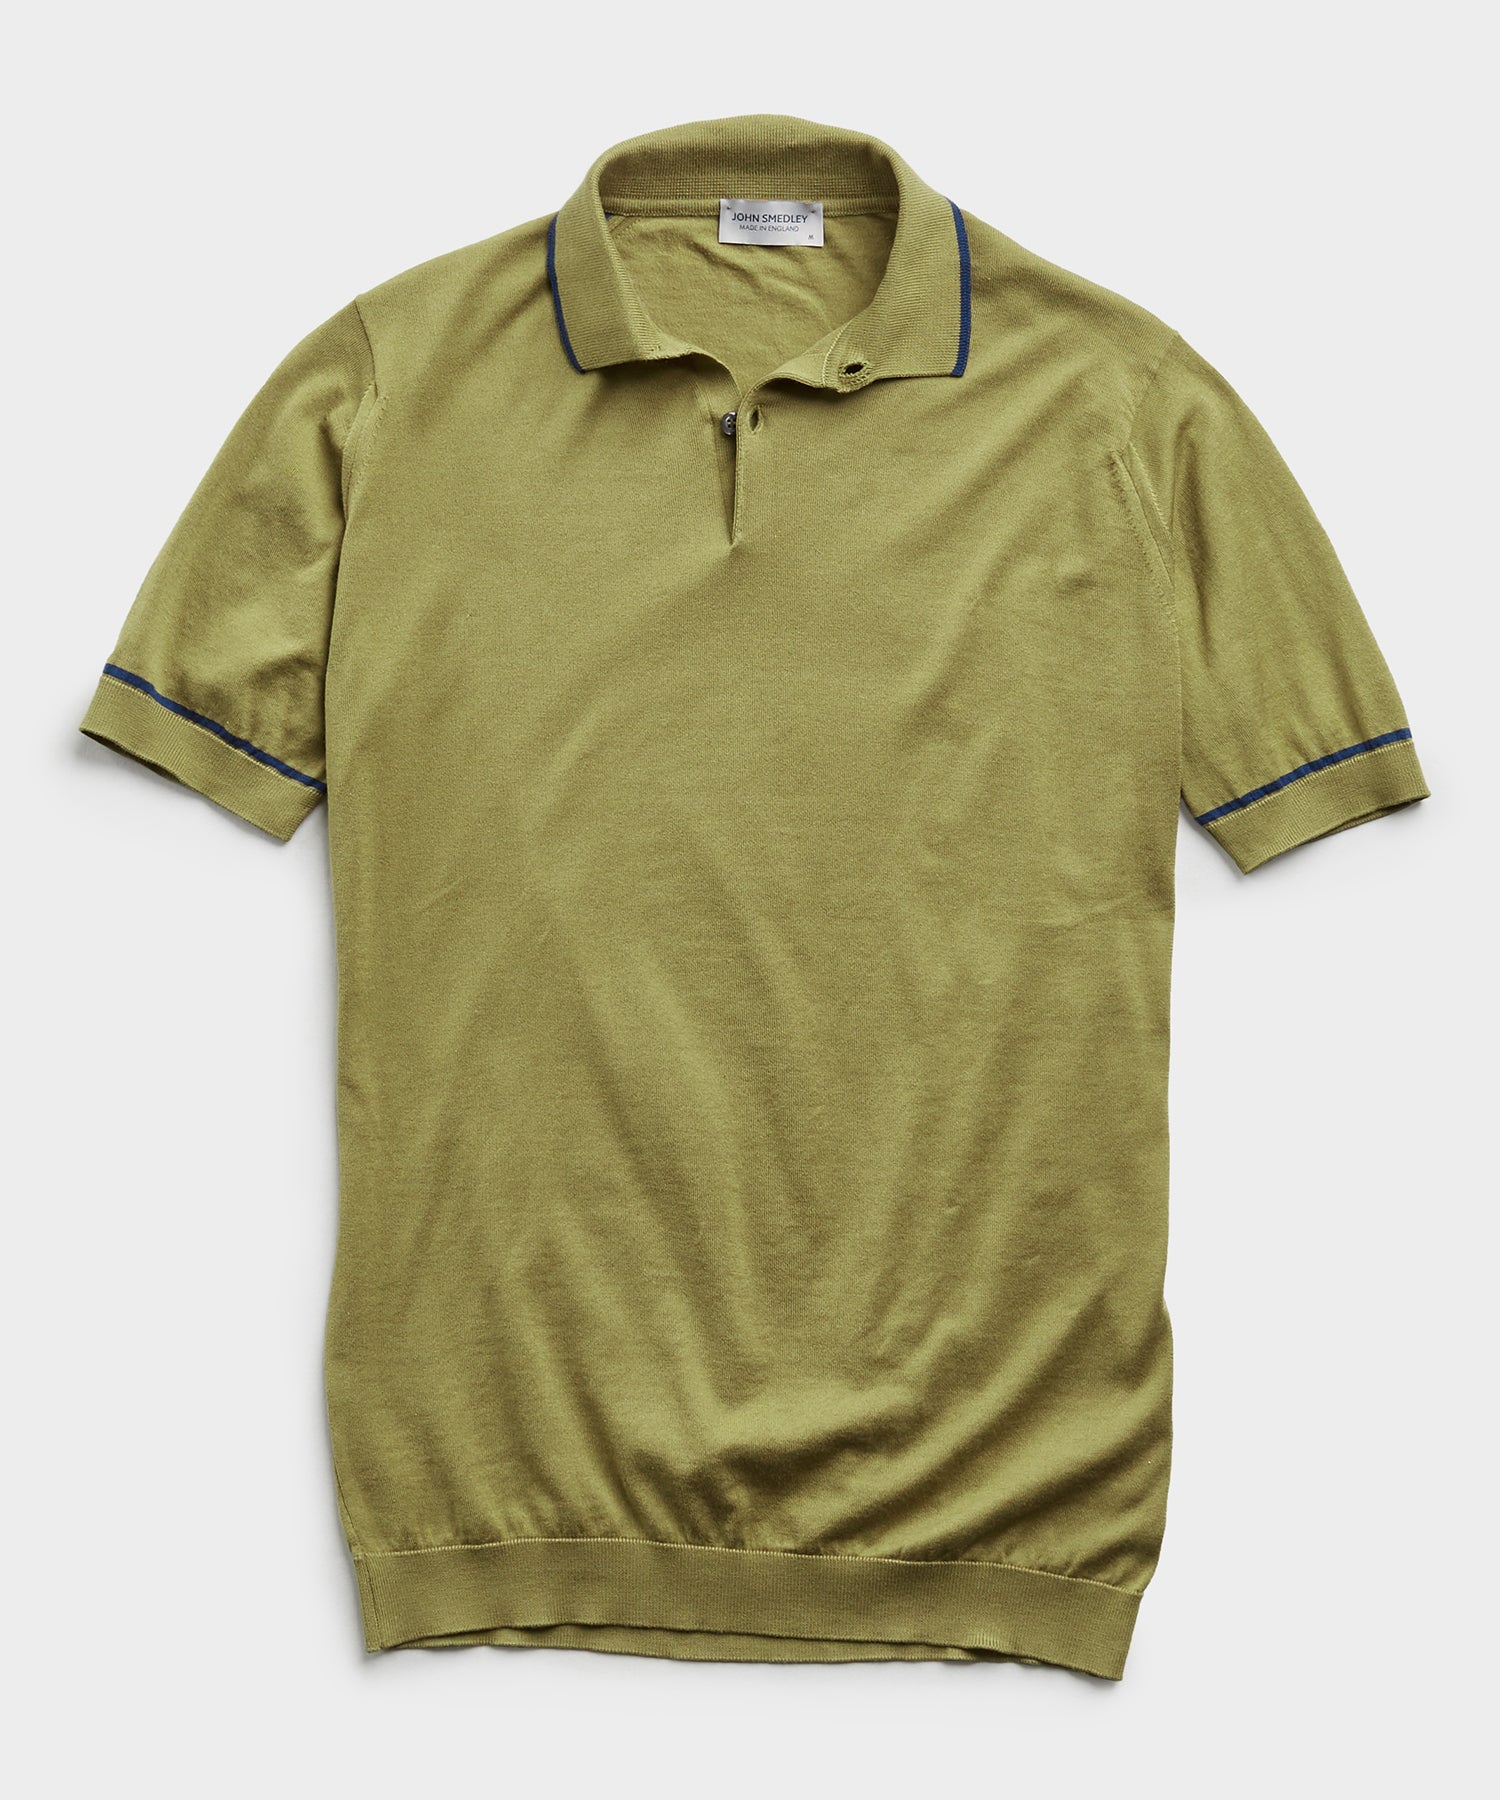 John Smedley Tipped Sea Island Cotton Polo in Willow Green